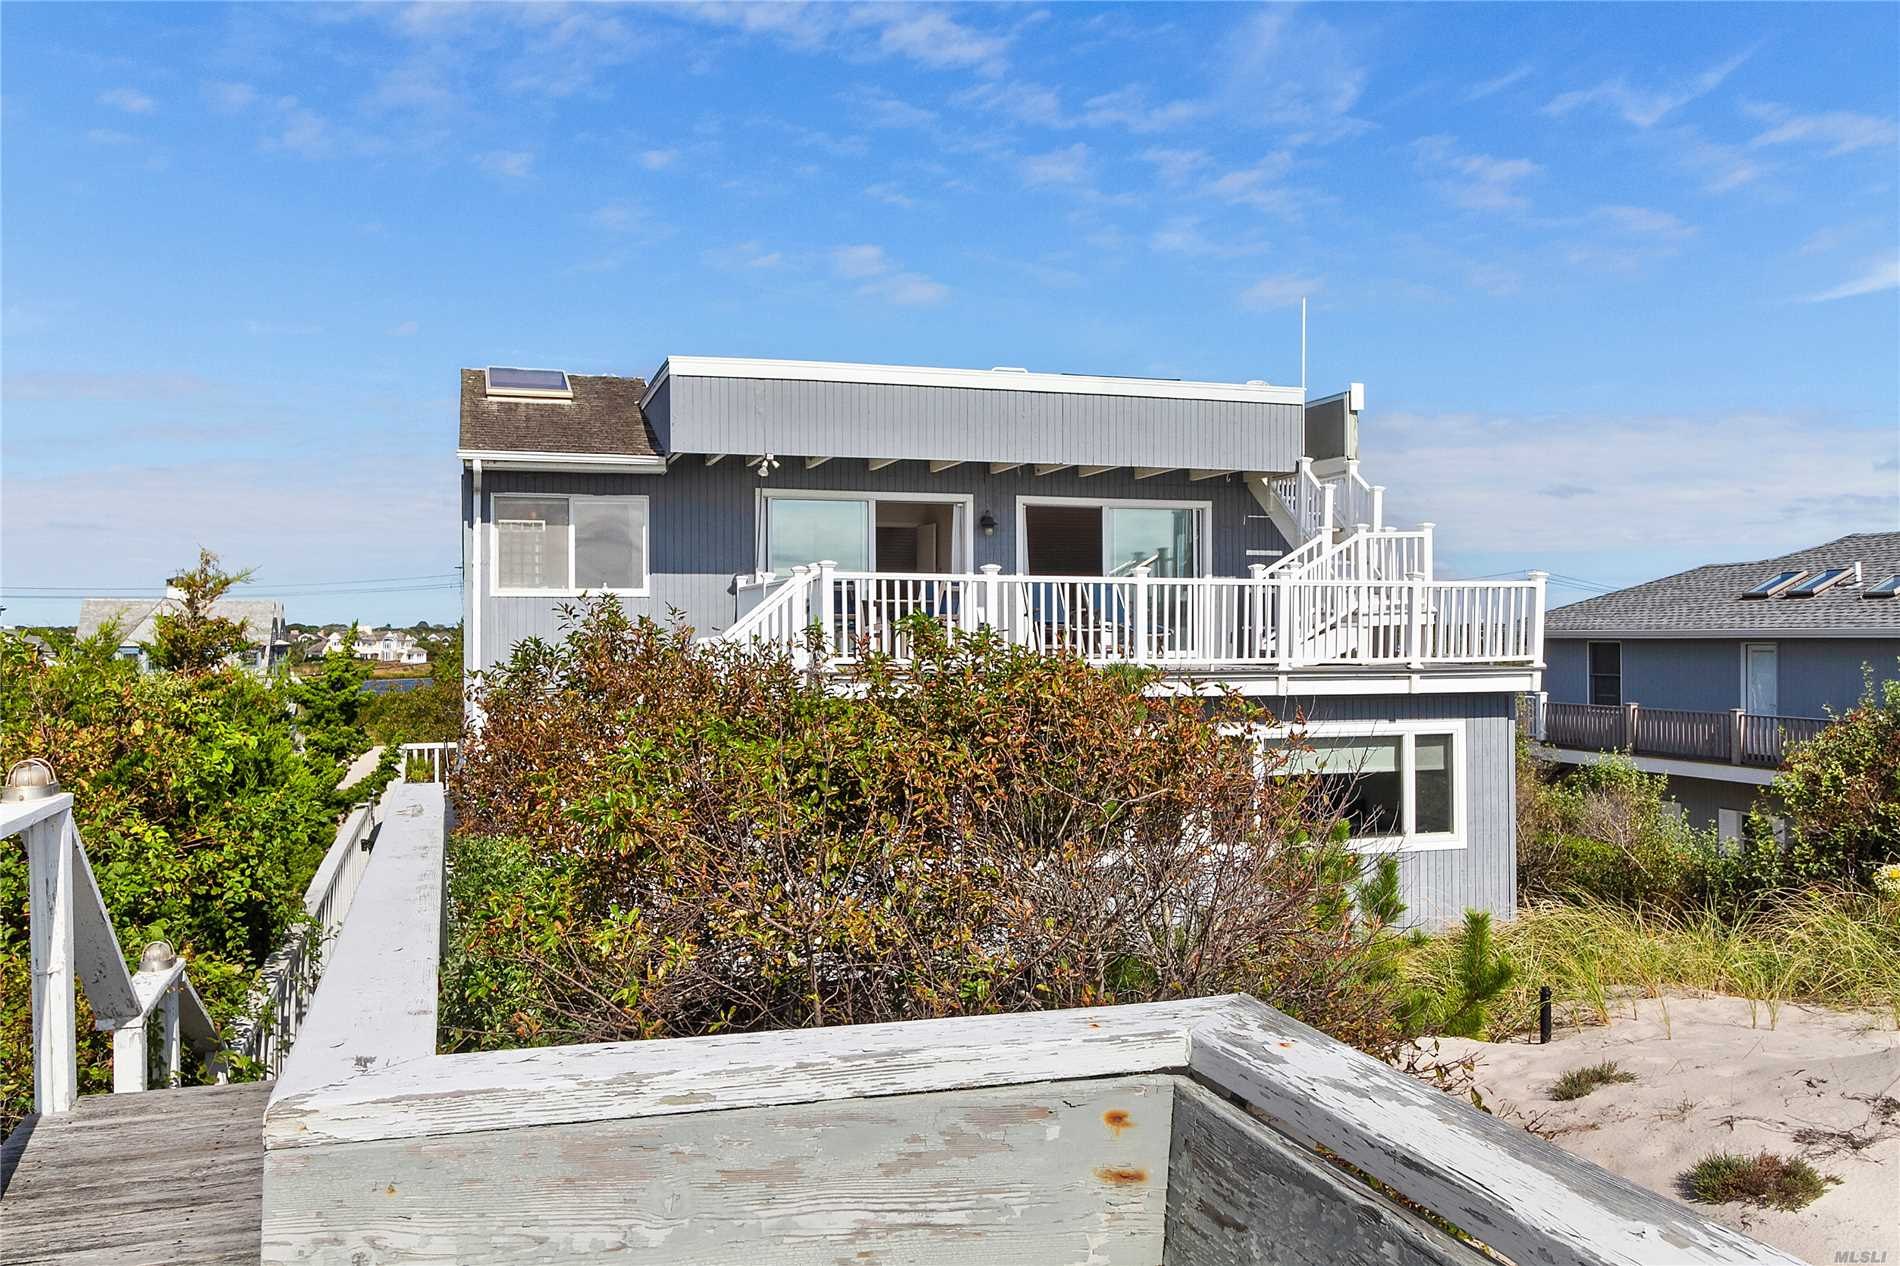 The 360 Degree Ocean And Bay Views Are Not To Be Missed At This Between The Bridges Contemporary Home, Especially From The Rooftop Deck. This 2300 Sq Ft Oceanfront Home Offers 75 Feet Of Sandy Beach With 5 Bedrooms And 4 Baths. Open Floor Plan On The Main Floor With Living/Dining Area, Fireplace, Kitchen, Large Den, 3 Bedrooms, Laundry. The Upper Floor Has A Master Suite, Sitting Room And Deck. Heated 20X40 Gunite Pool, Hot Tub And Cabana With Full Bath.